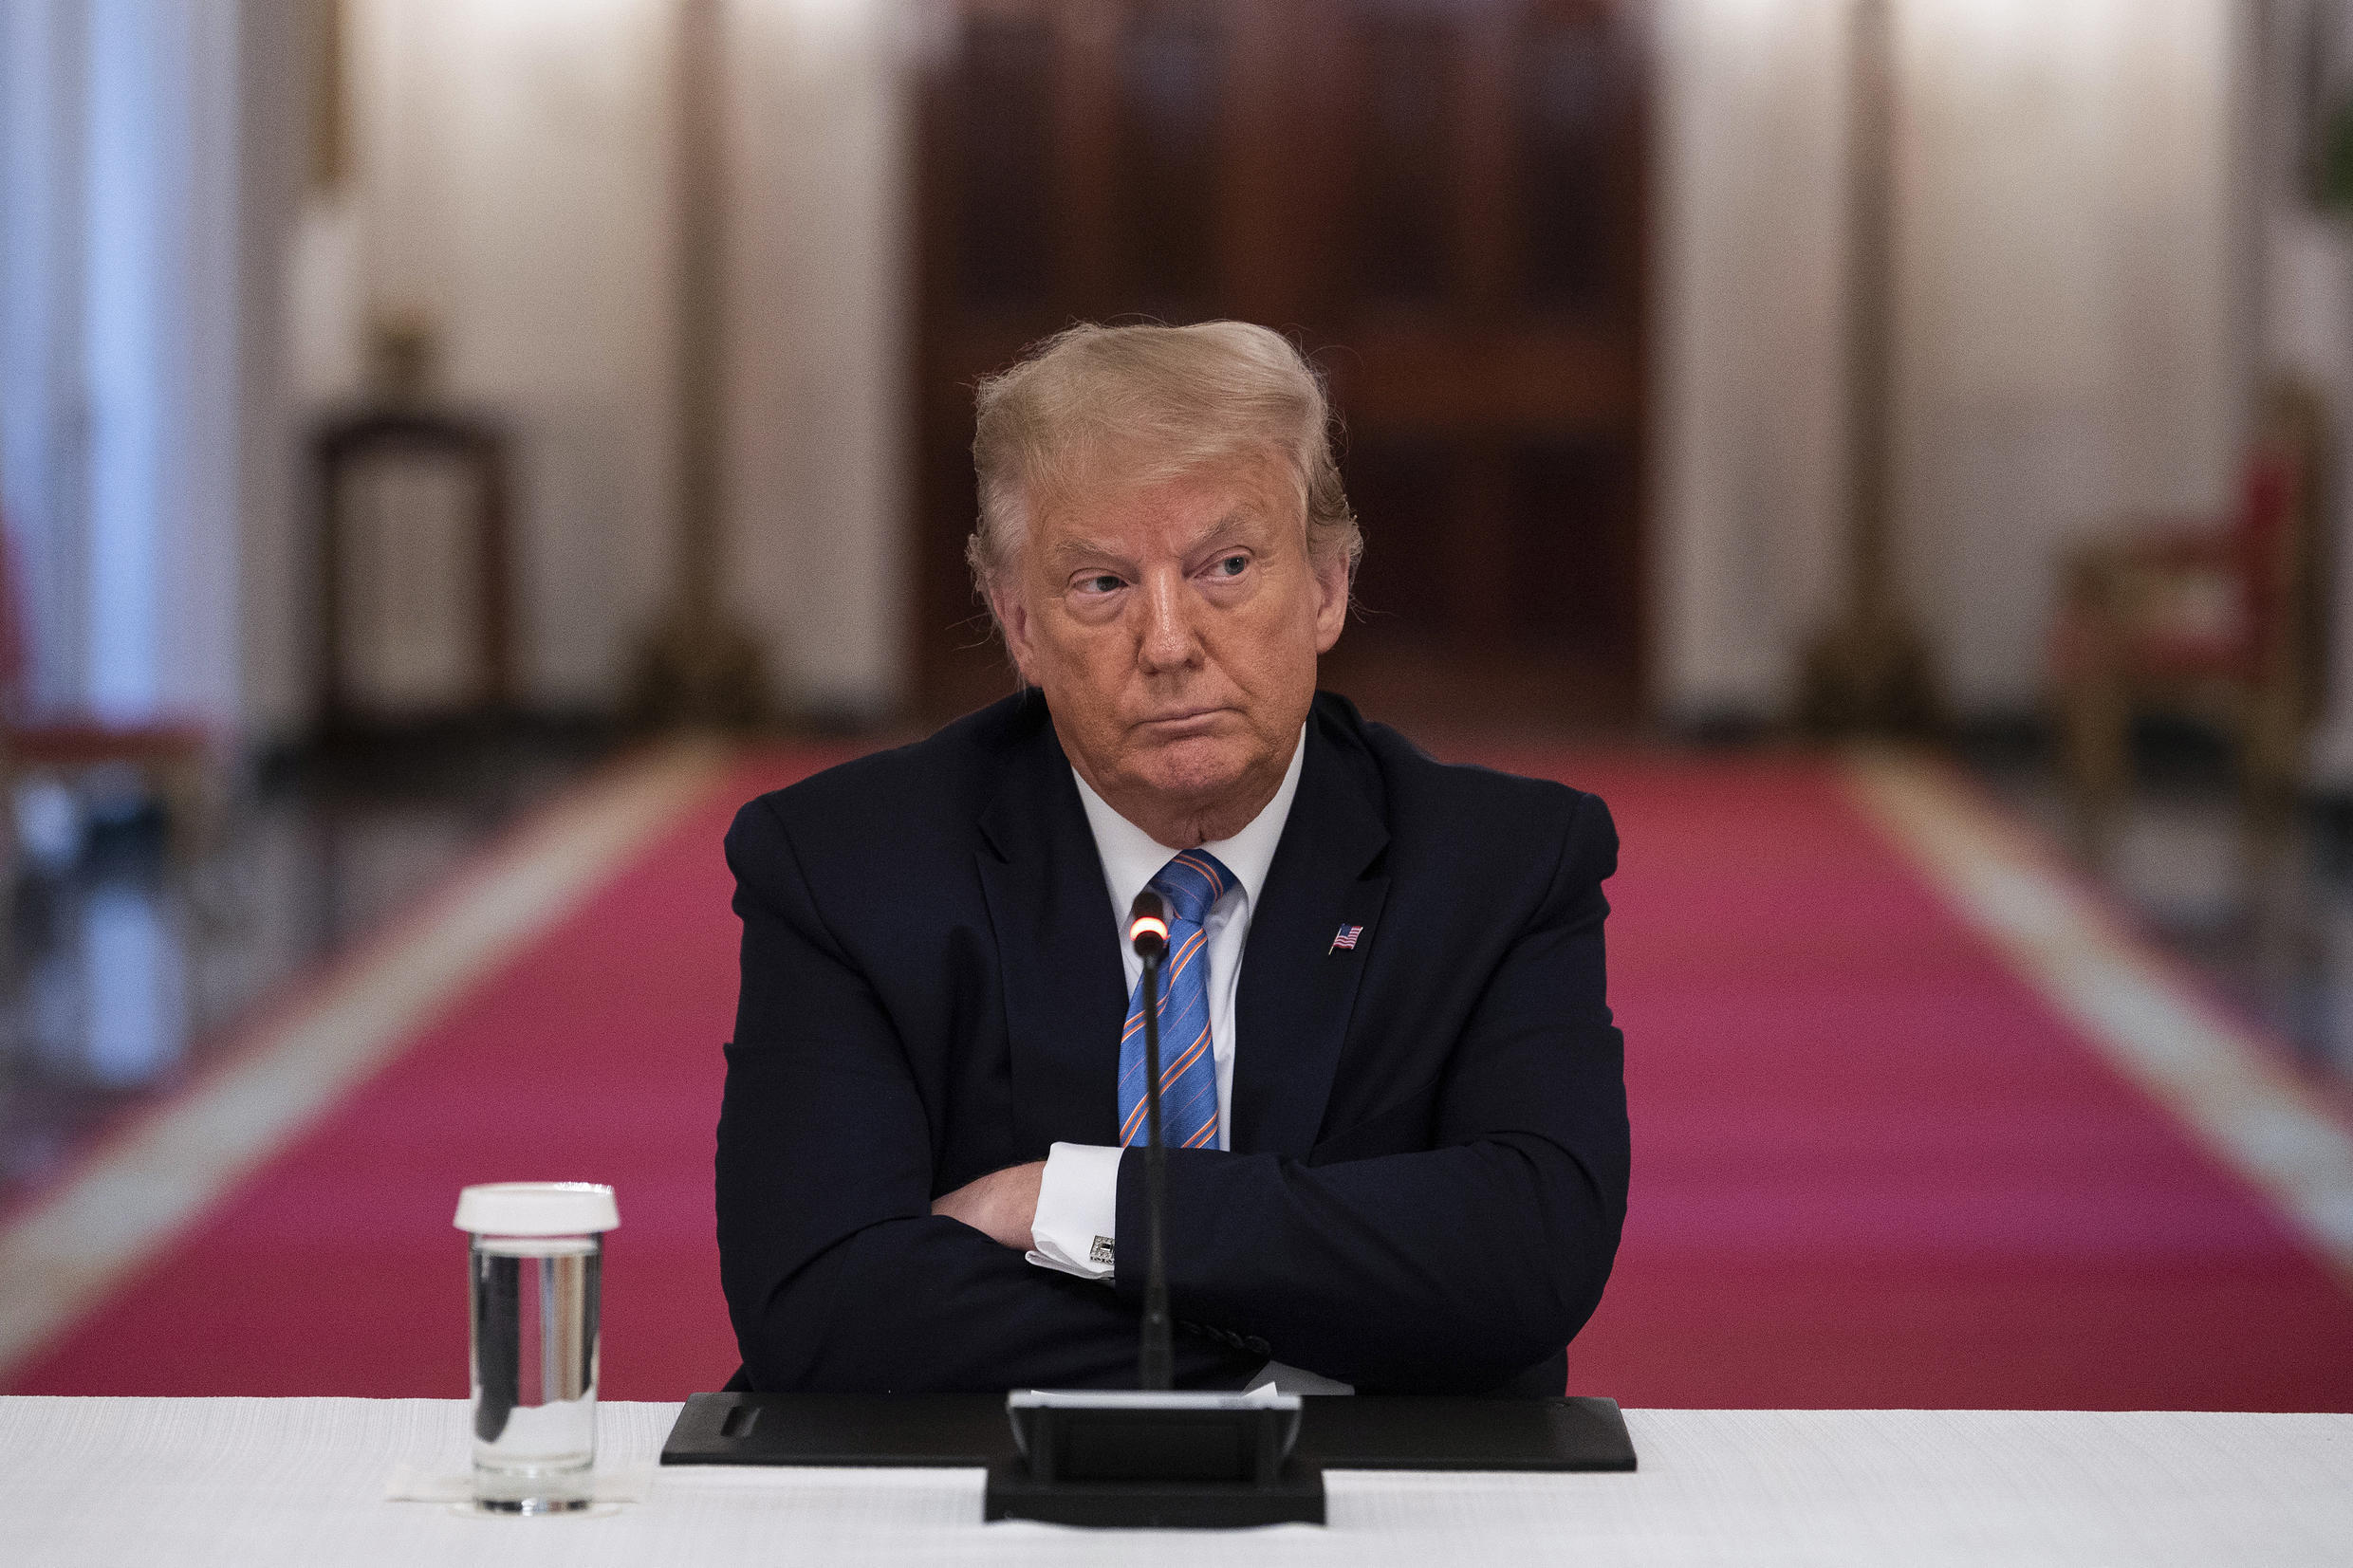 US President Donald Trump during a White House roundtable discussion on the Safe Reopening of America's Schools on July 7, 2020.